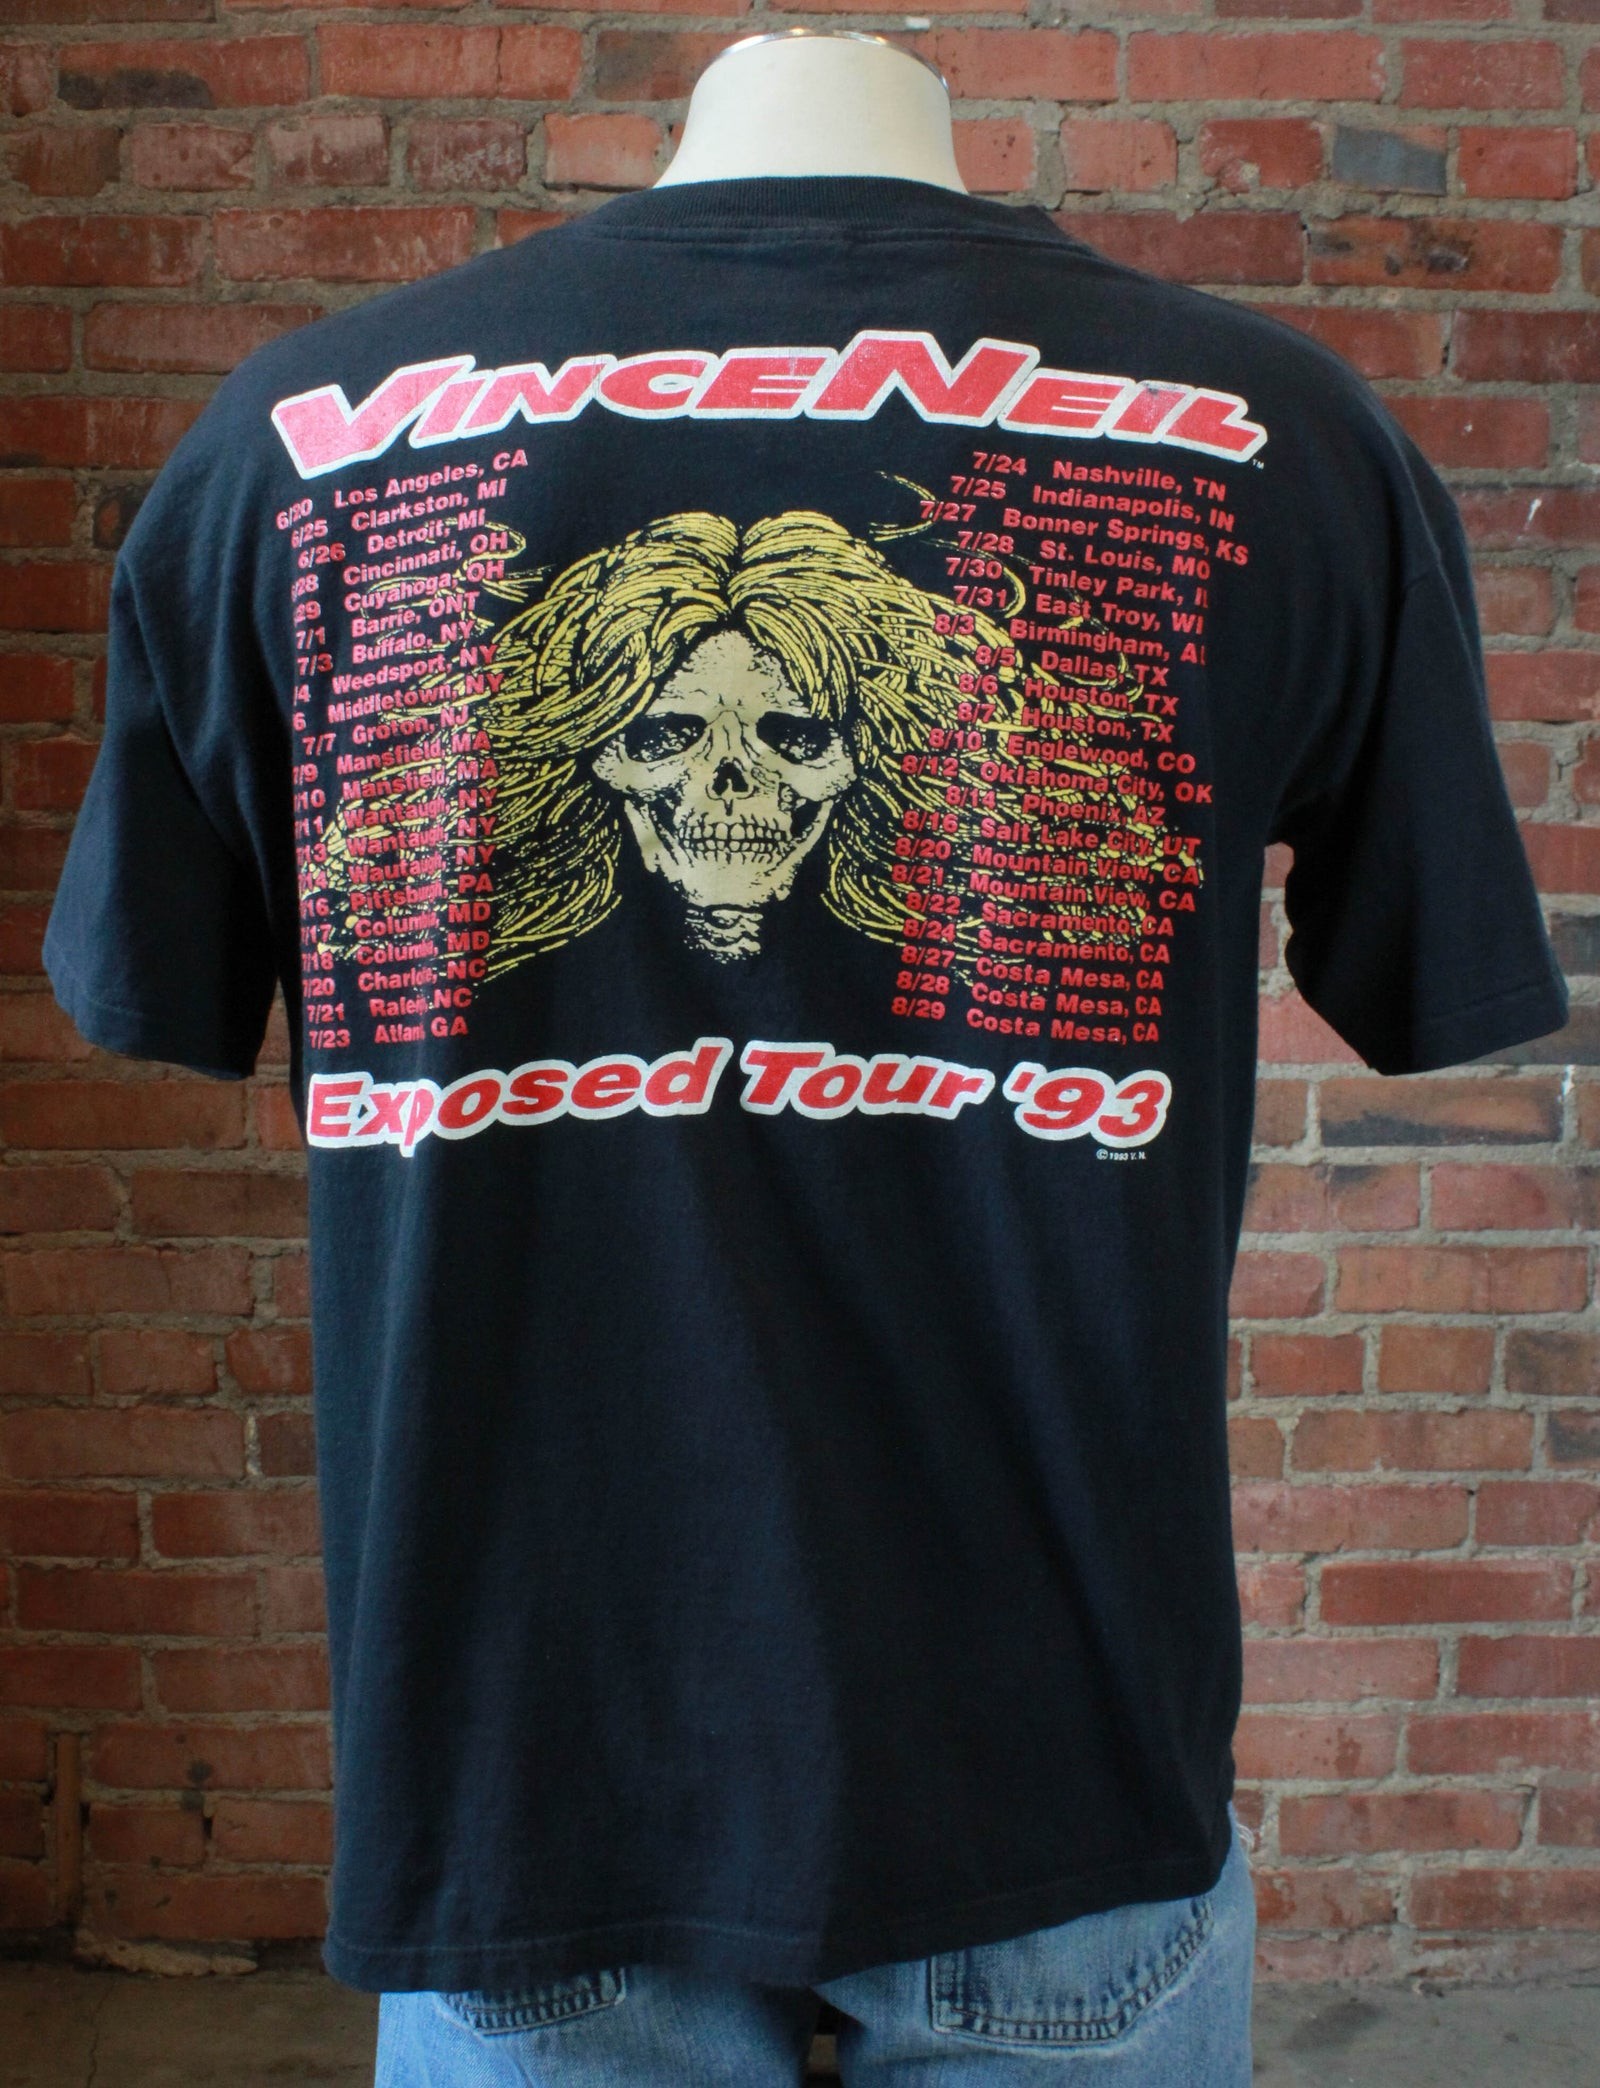 Vintage Vince Neil Concert T Shirt 1993 Exposed Tour Unisex Extra Large